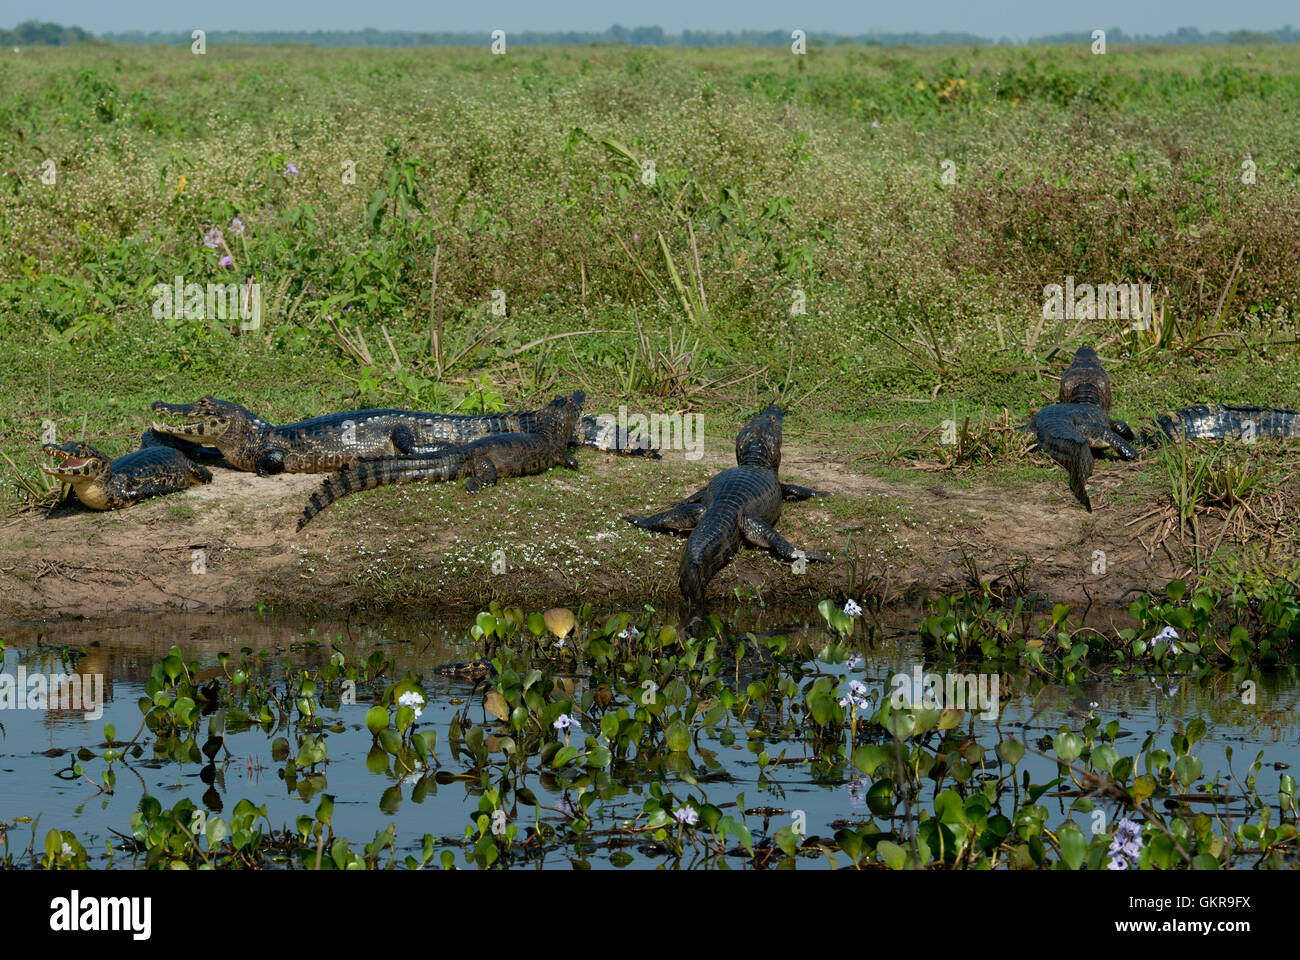 Yacare caiman (Caiman yacare) on a riverbank in the Pantanal, Brazil - Stock Image